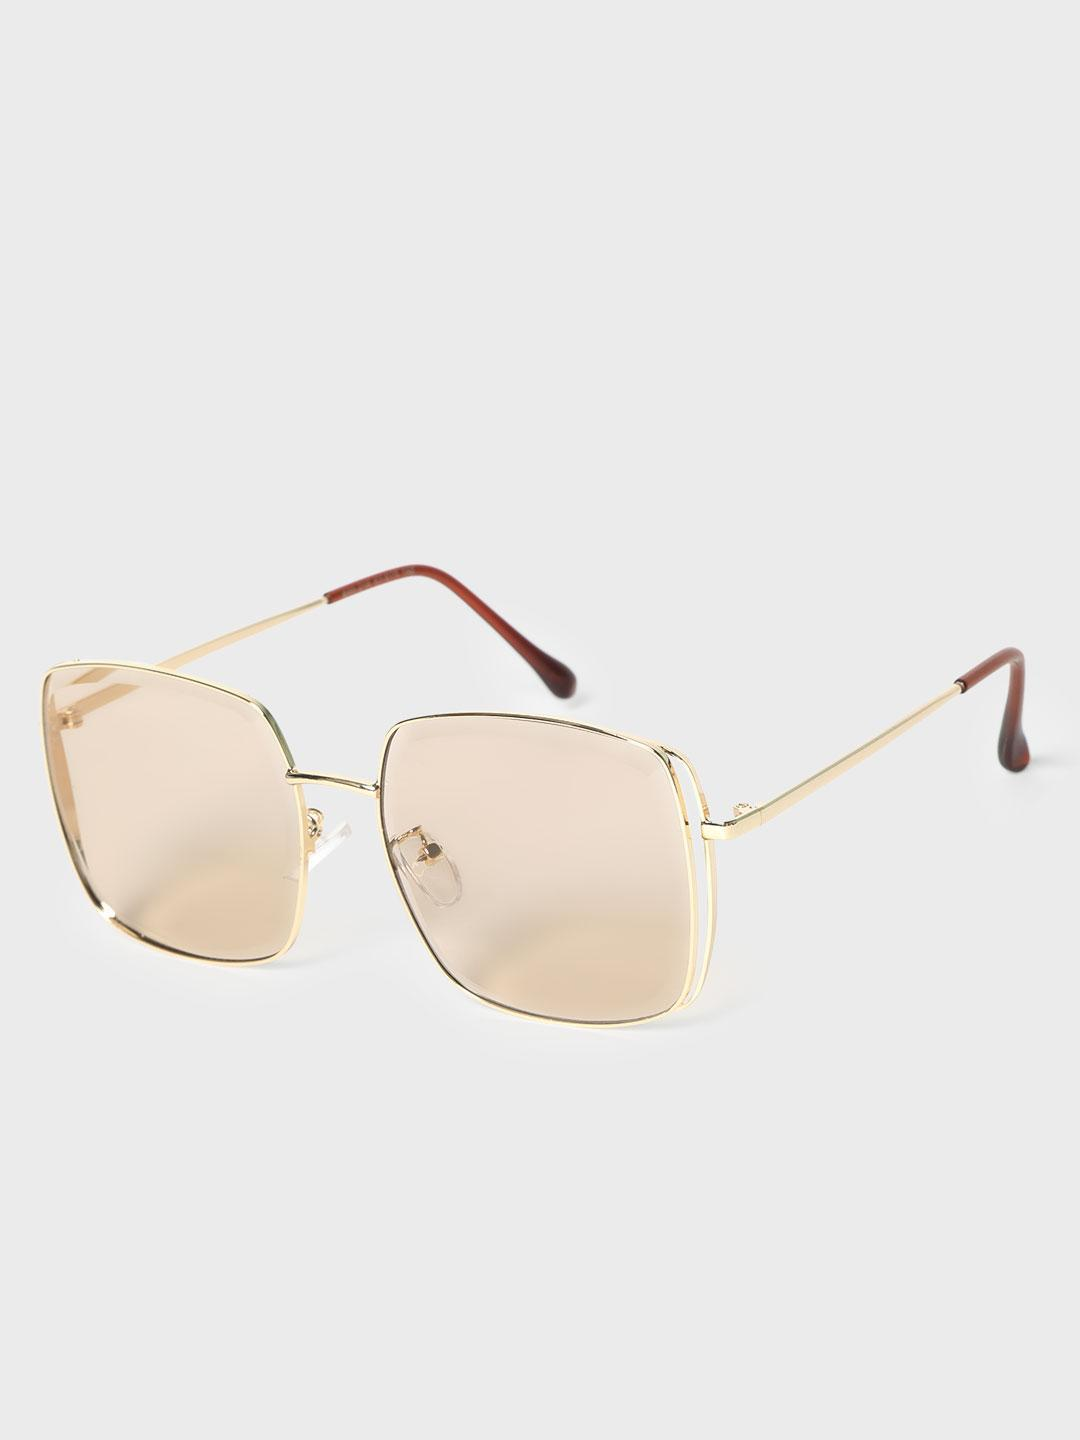 KOOVS Brown Tinted Square Sunglasses 1